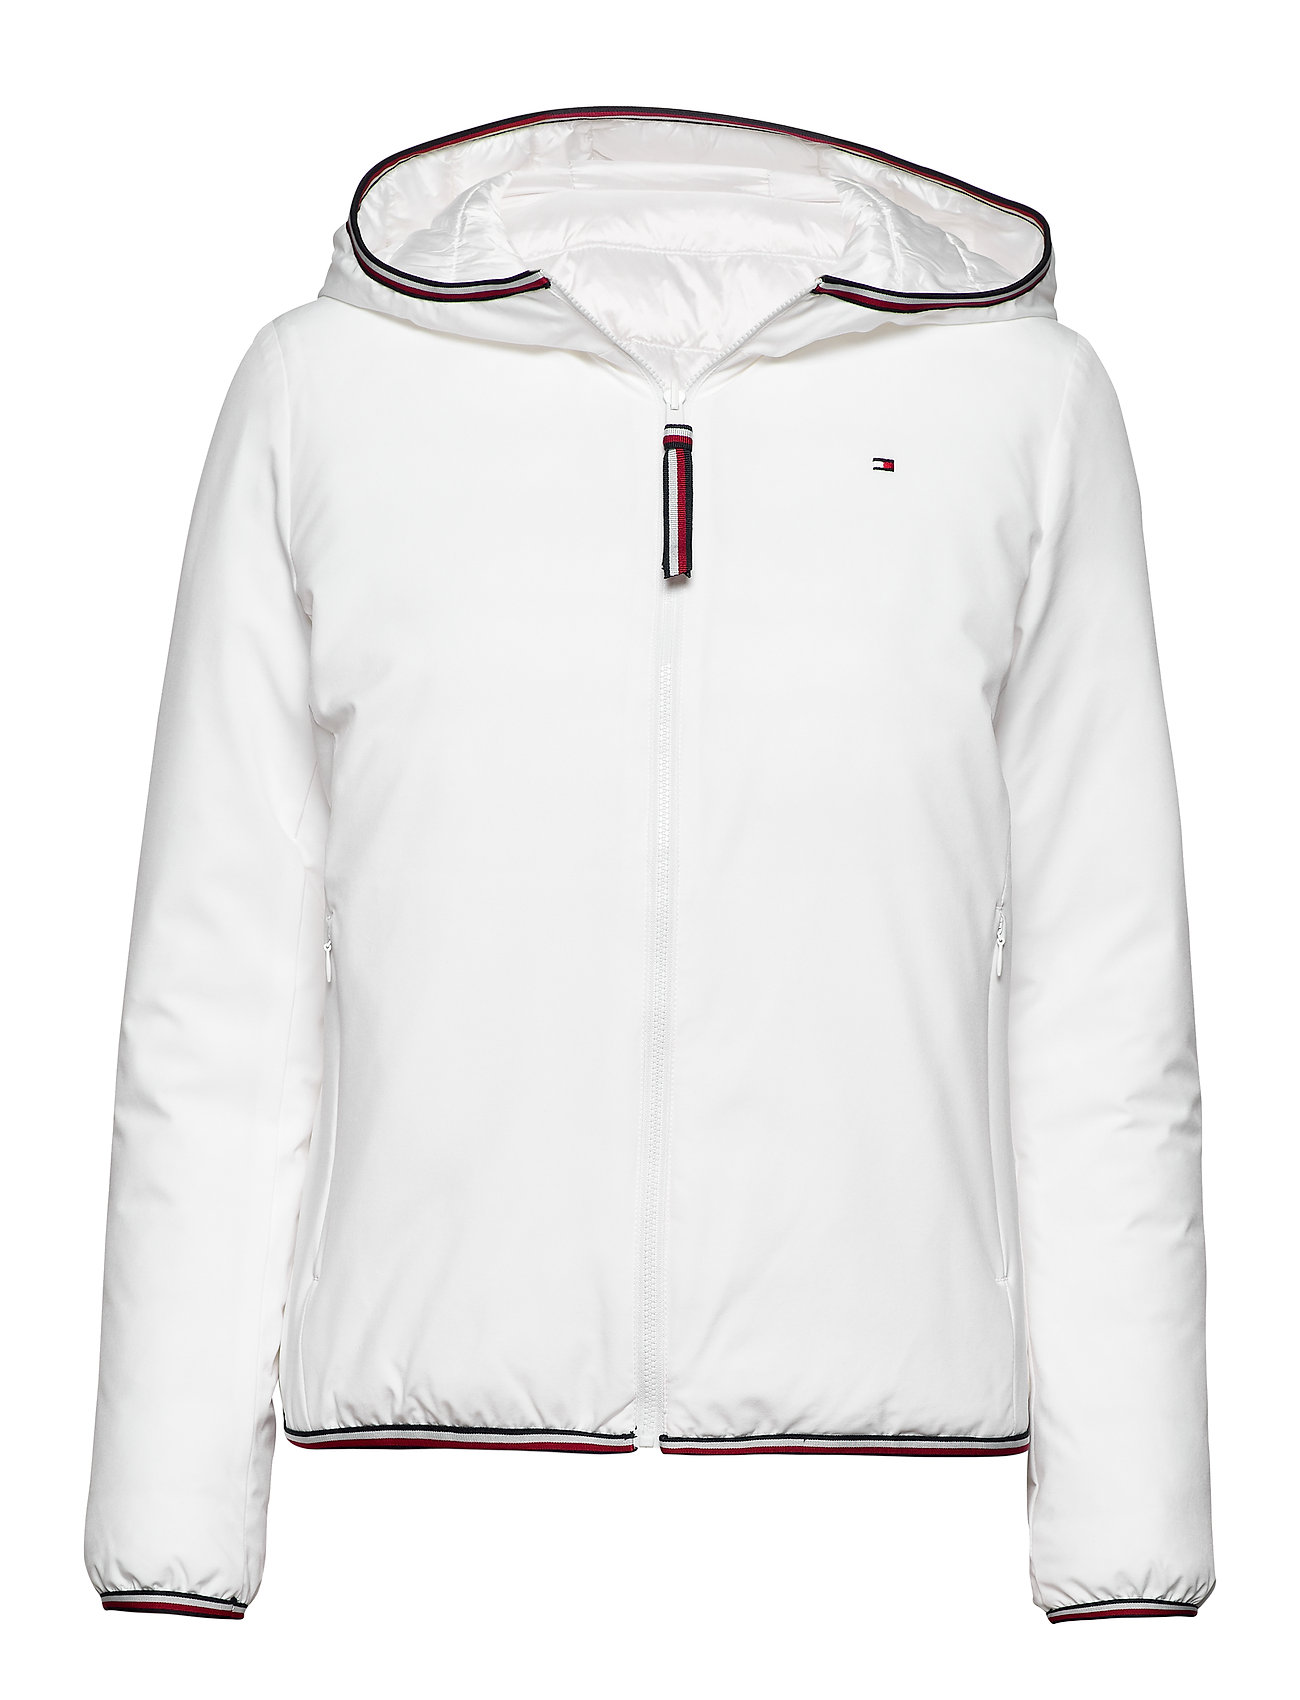 Tommy Hilfiger TH ESSENTIAL REVERS - WHITE